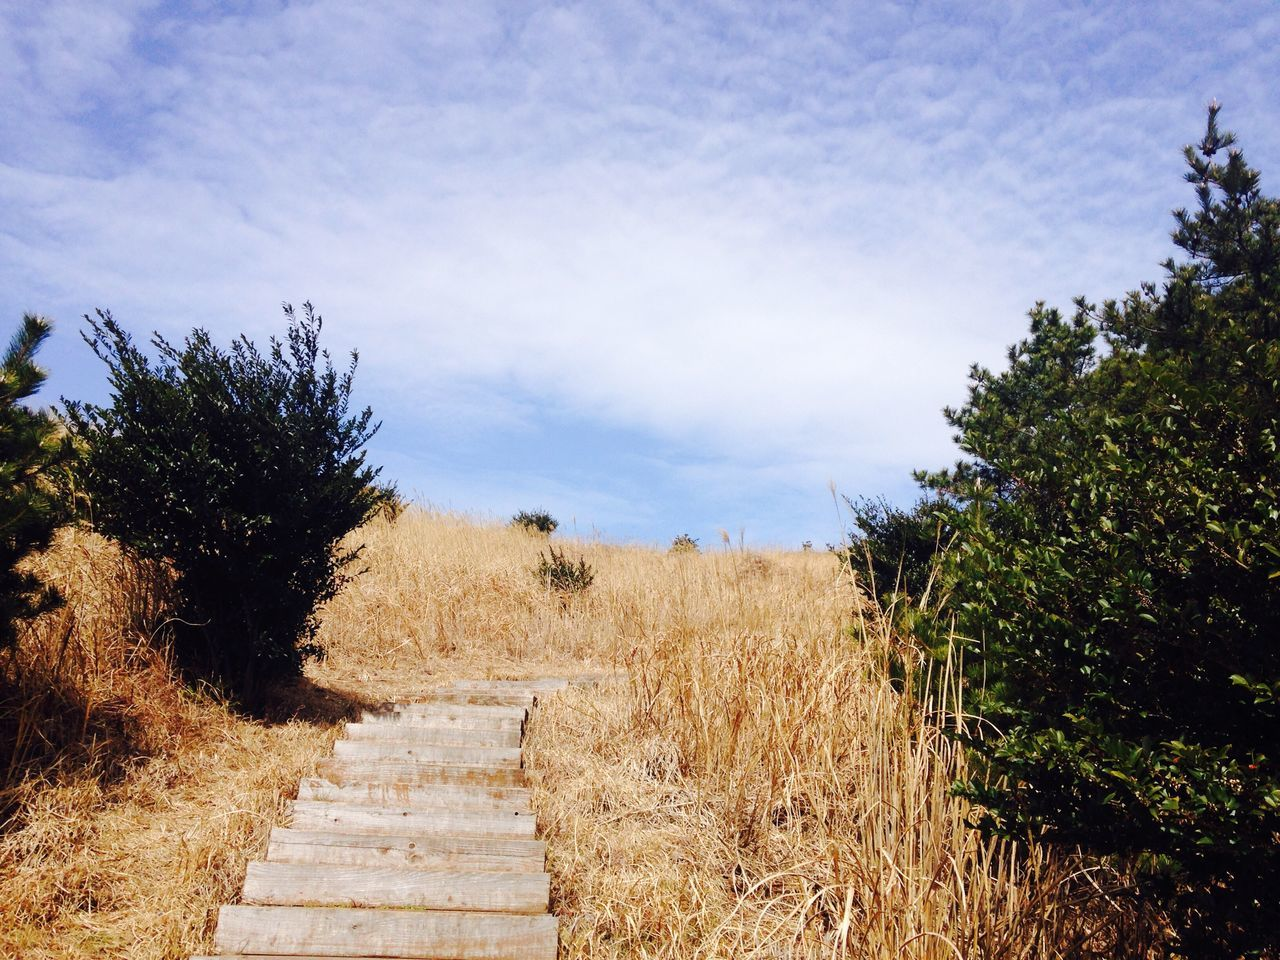 steps, sky, tree, steps and staircases, growth, nature, cloud - sky, day, outdoors, scenics, no people, beauty in nature